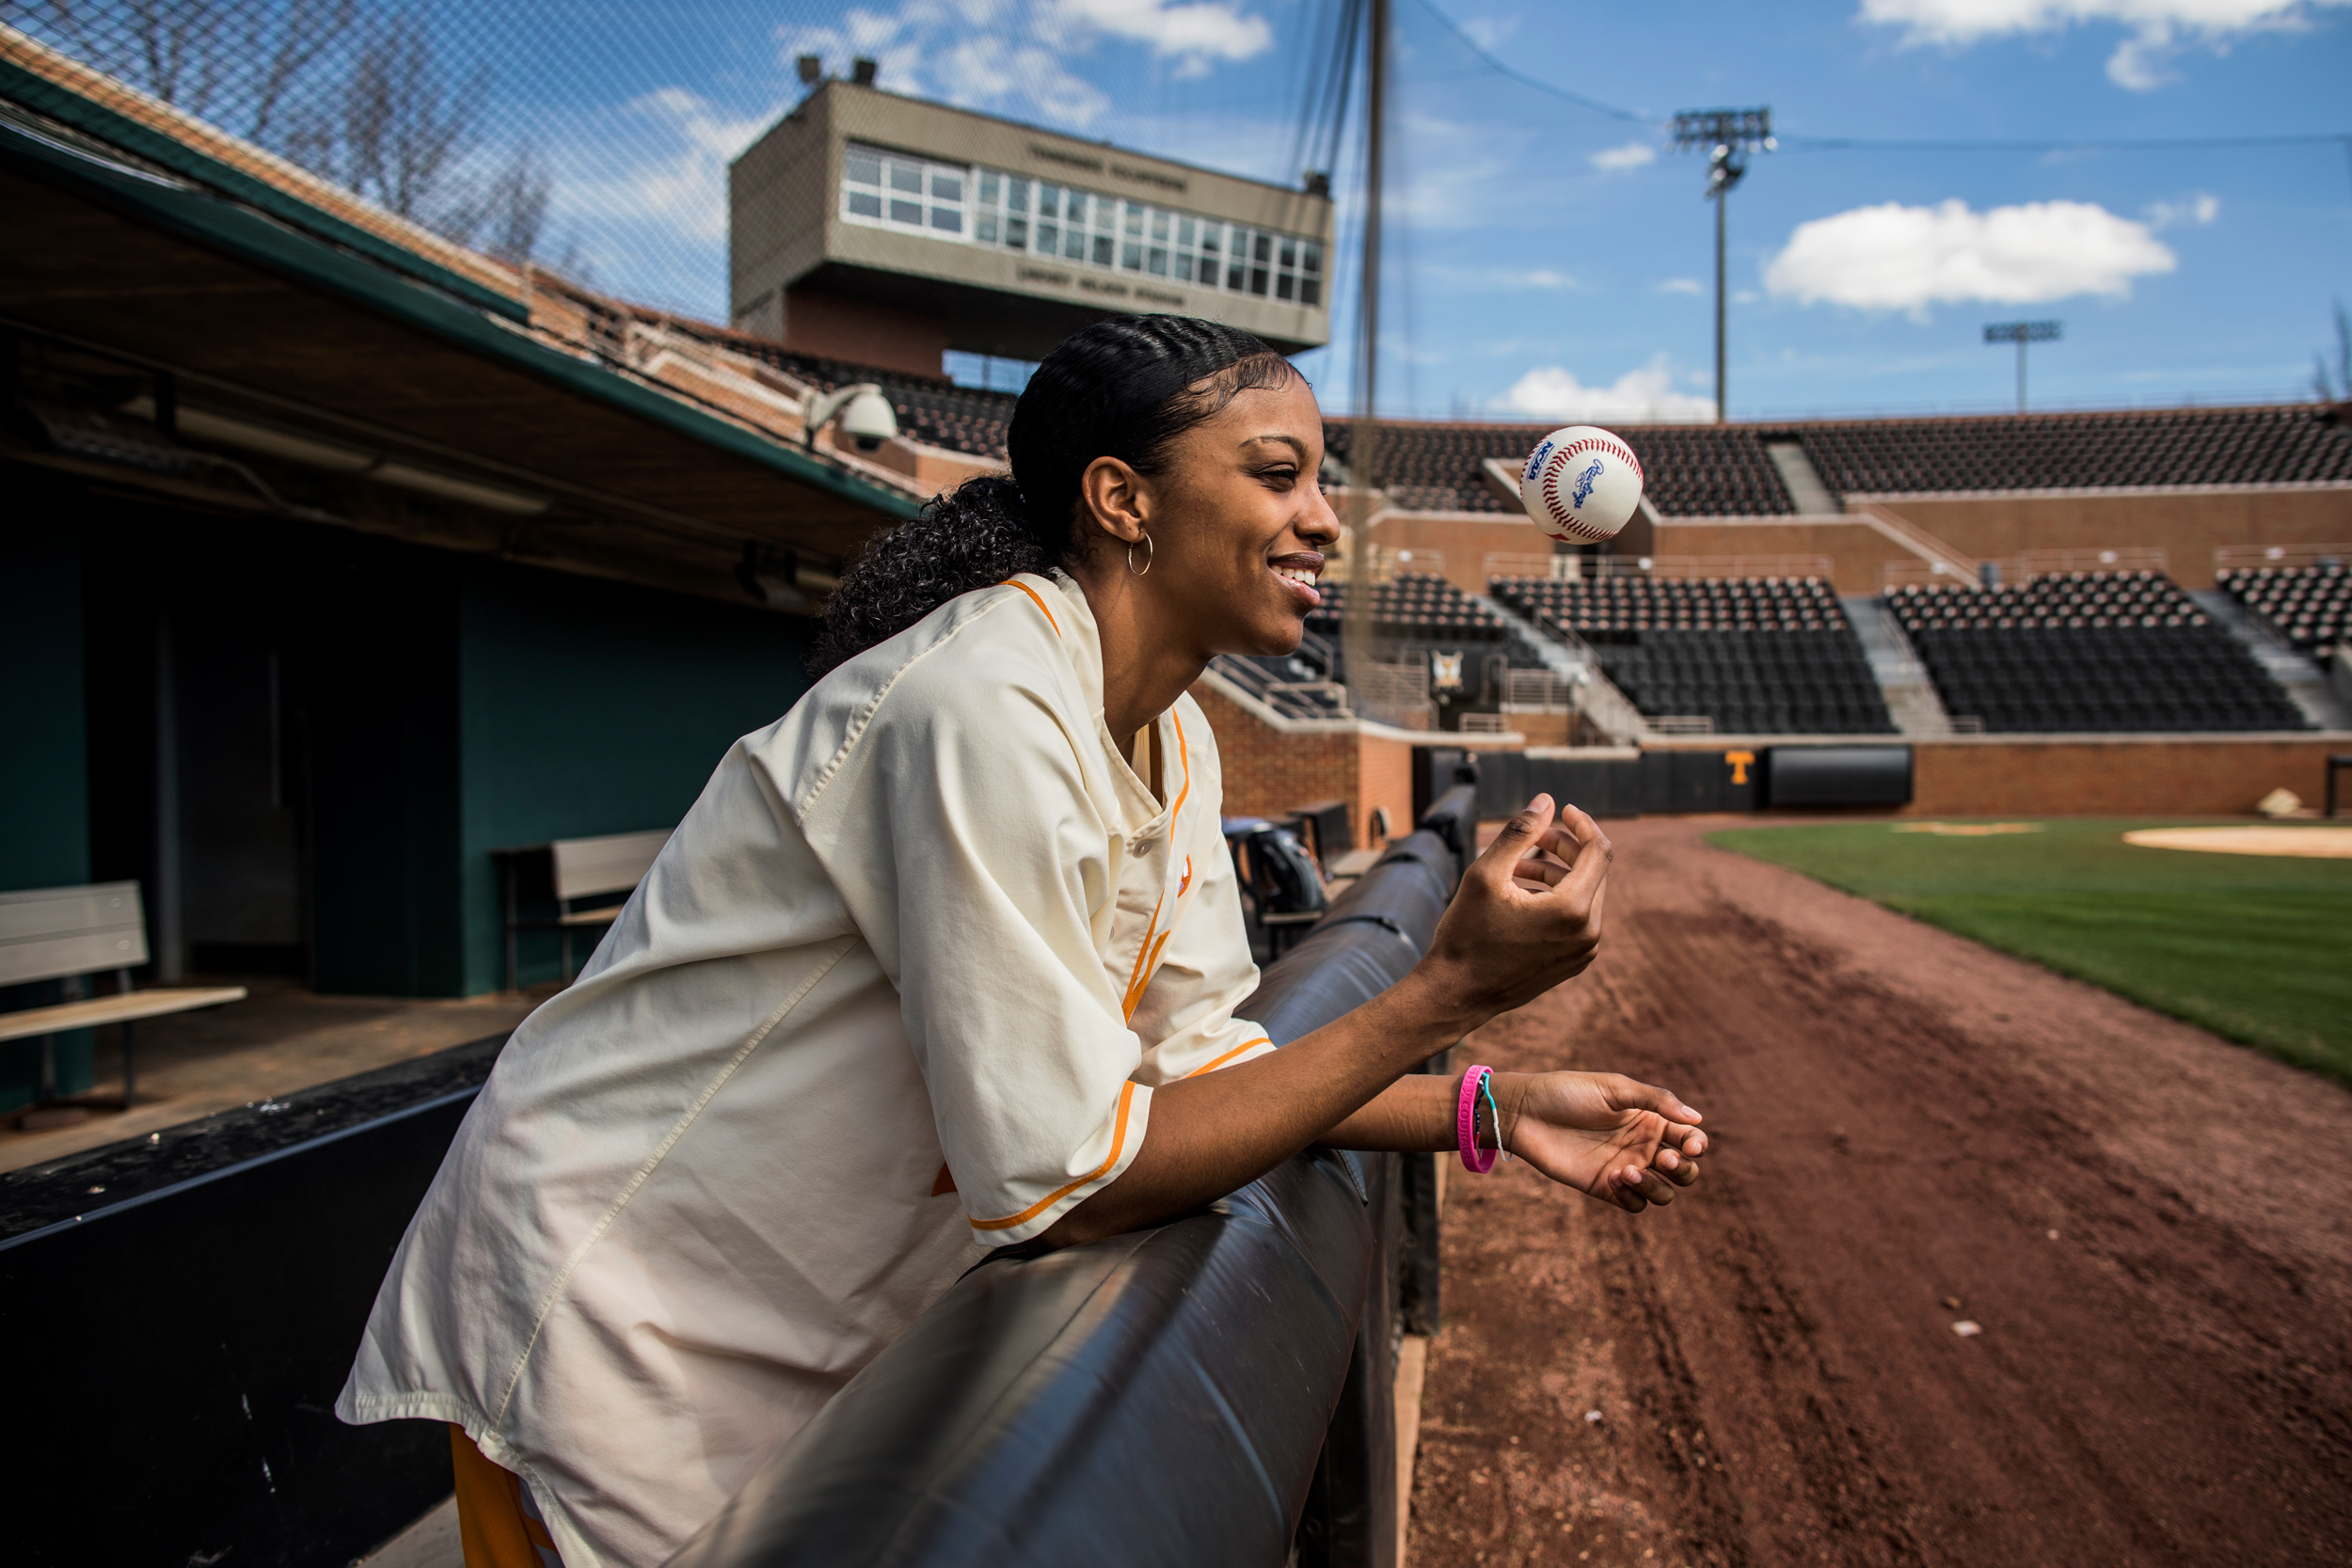 Diamond DeShields is one of the best women's college basketball players in the country, but she comes from a lineage of baseball players. Her father and now brother both played in the MLB.